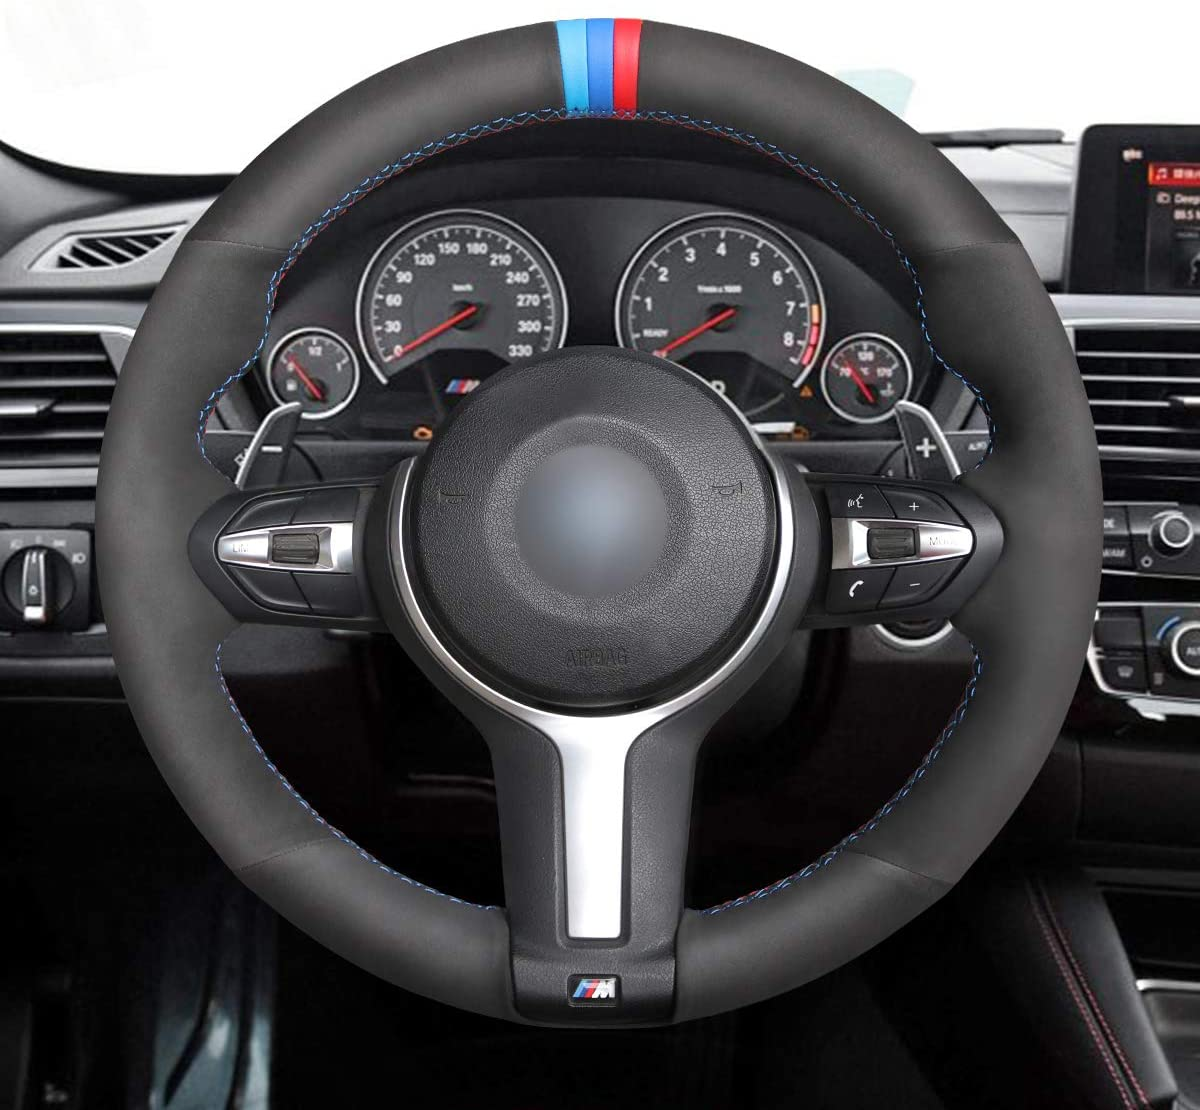 Black Suede Car Steering Wheel Covers for BMW F87 M2 2015-2017 F80 M3 F82 M4 2 M5 2014-2017 F12 F13 M6 F85 X5 M F86 X6 M F33 2013-2017 F30 M Sport 2013-2017 MEWANT Hand-Stitch 1.2mm Thickness